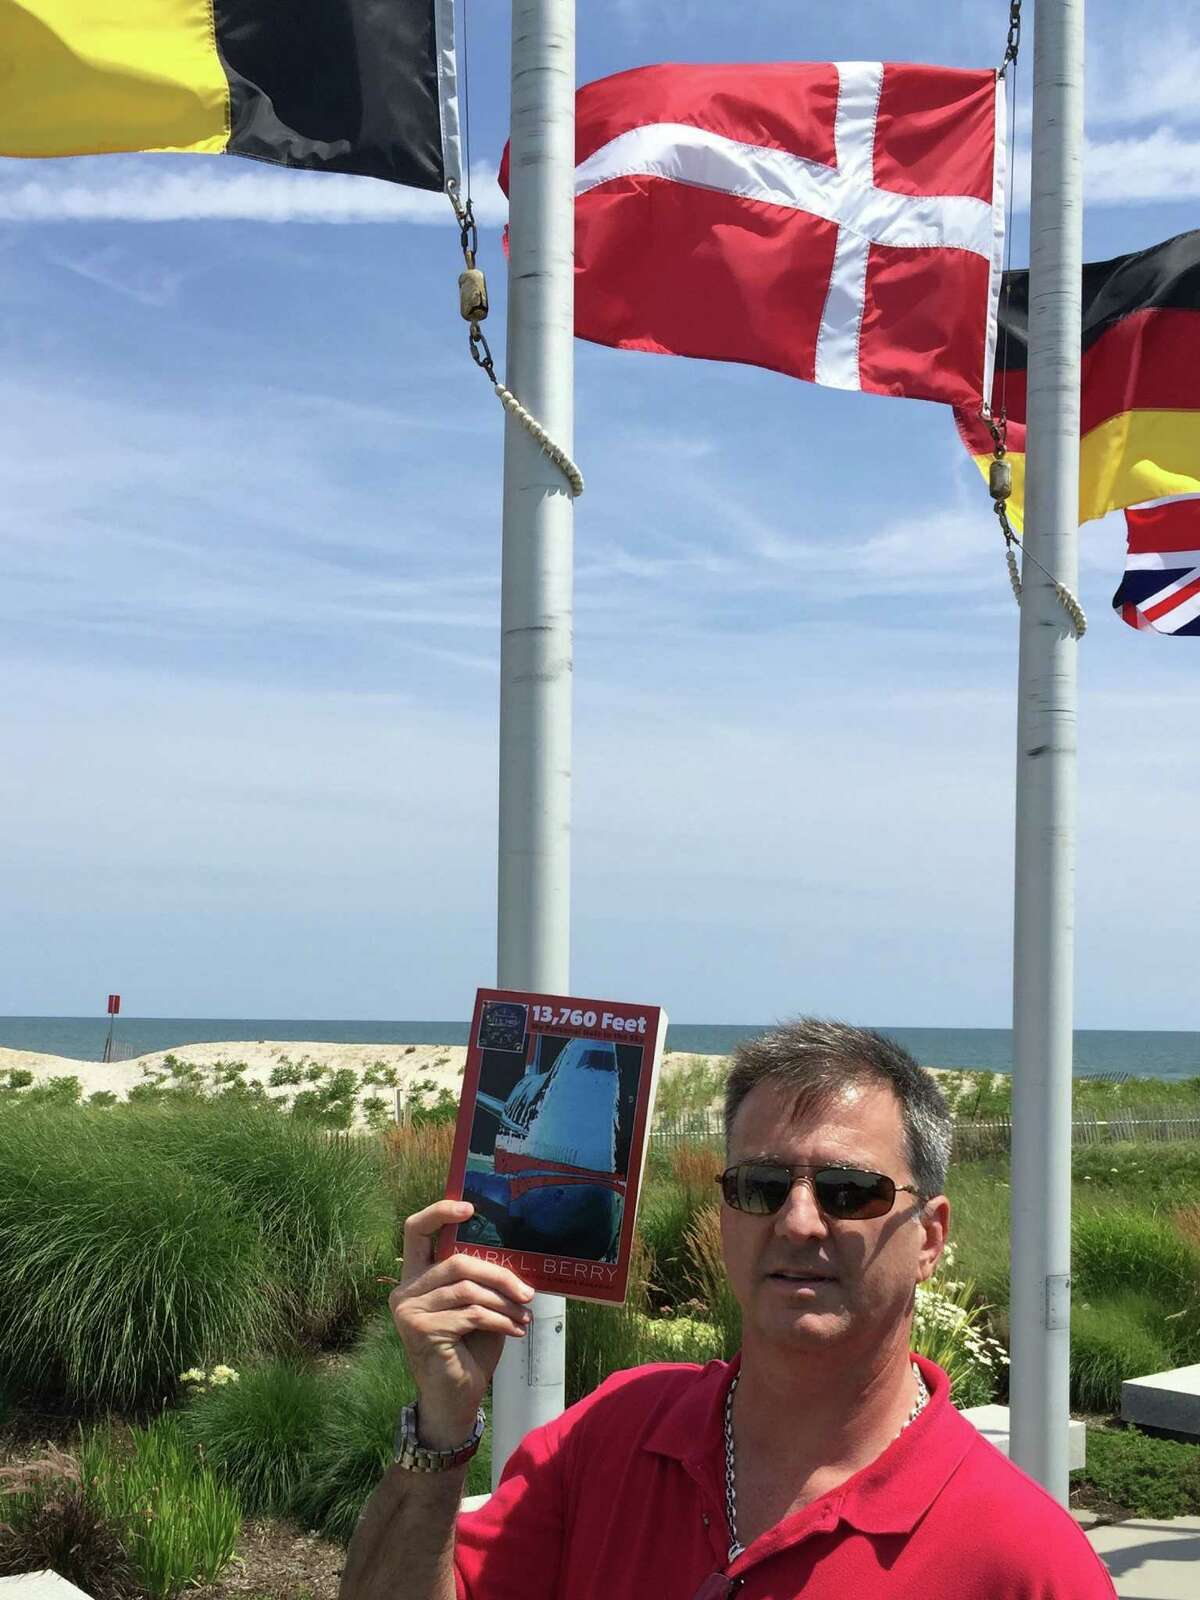 """The title of Greenwich native Mark Berry's memoir """"13,760 Feet,"""" refers to the altitude of TWA Flight 800 which exploded off Long Island 19 years. Berry's fiance was on that flight."""